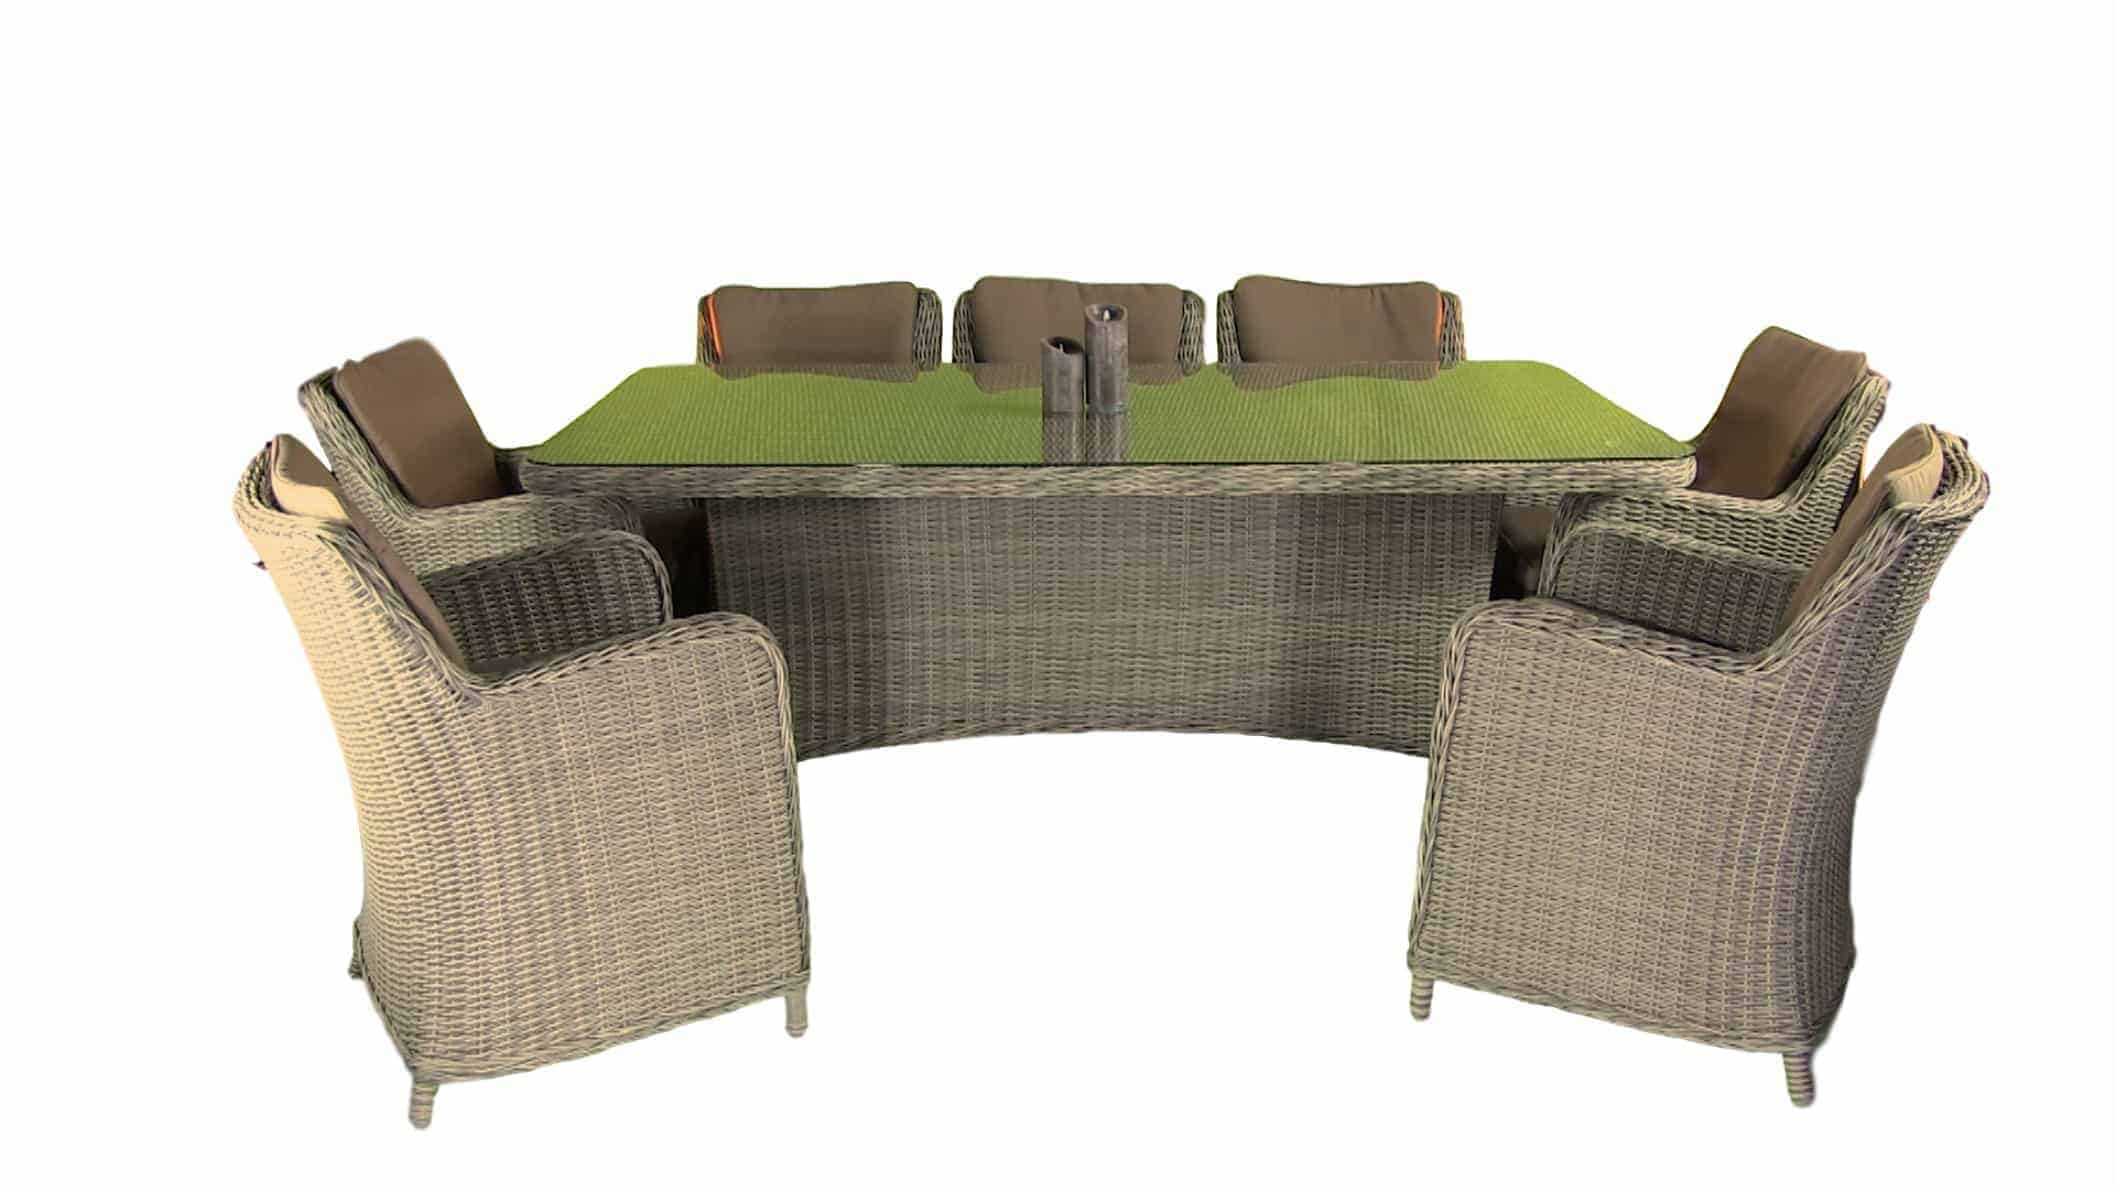 Bilbao round rattan garden table and 6 chairs chairs seating - Garden furniture dublin ...